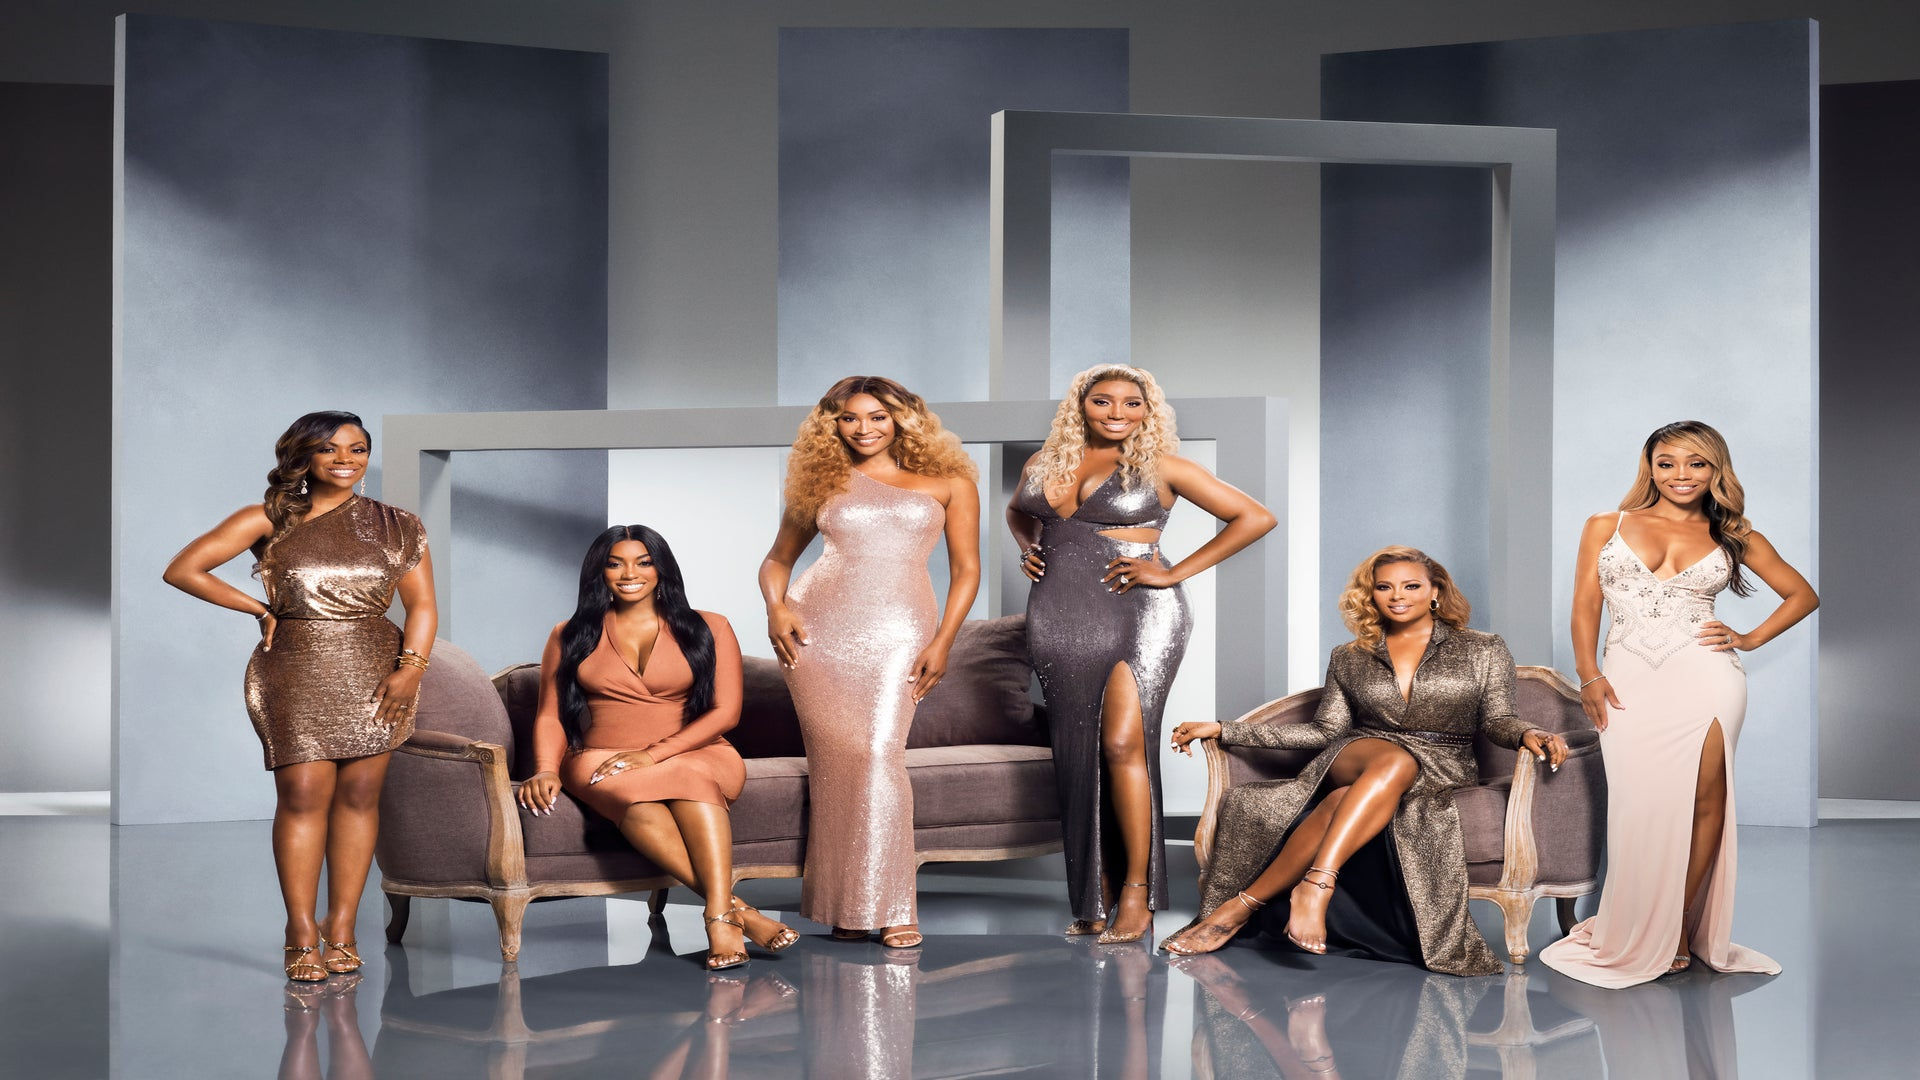 See These Super Glamorous Shots Of 'The Real Housewives Of Atlanta' Cast